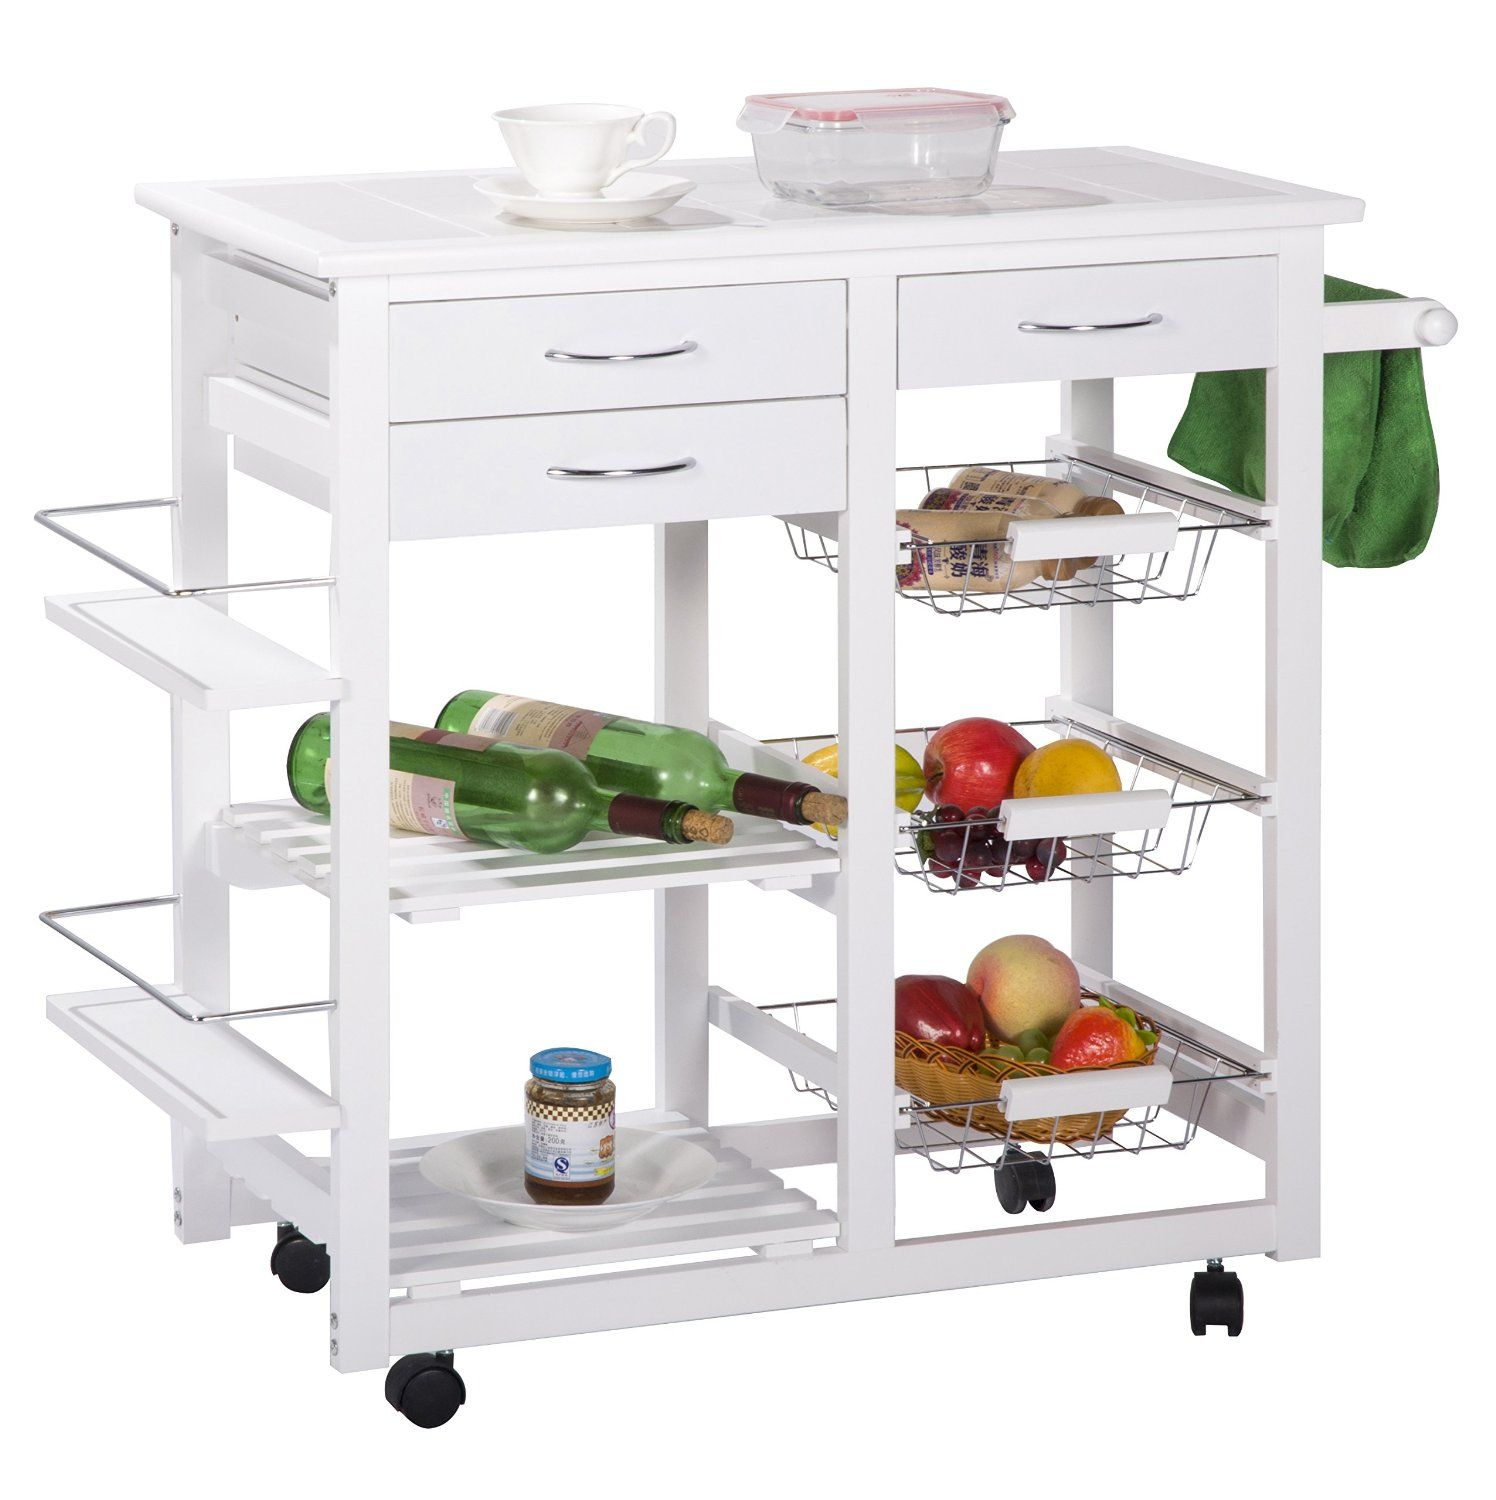 Merax Tile Top Mobile Kitchen Cart Island With Drawers Cabinet Storage White Finish